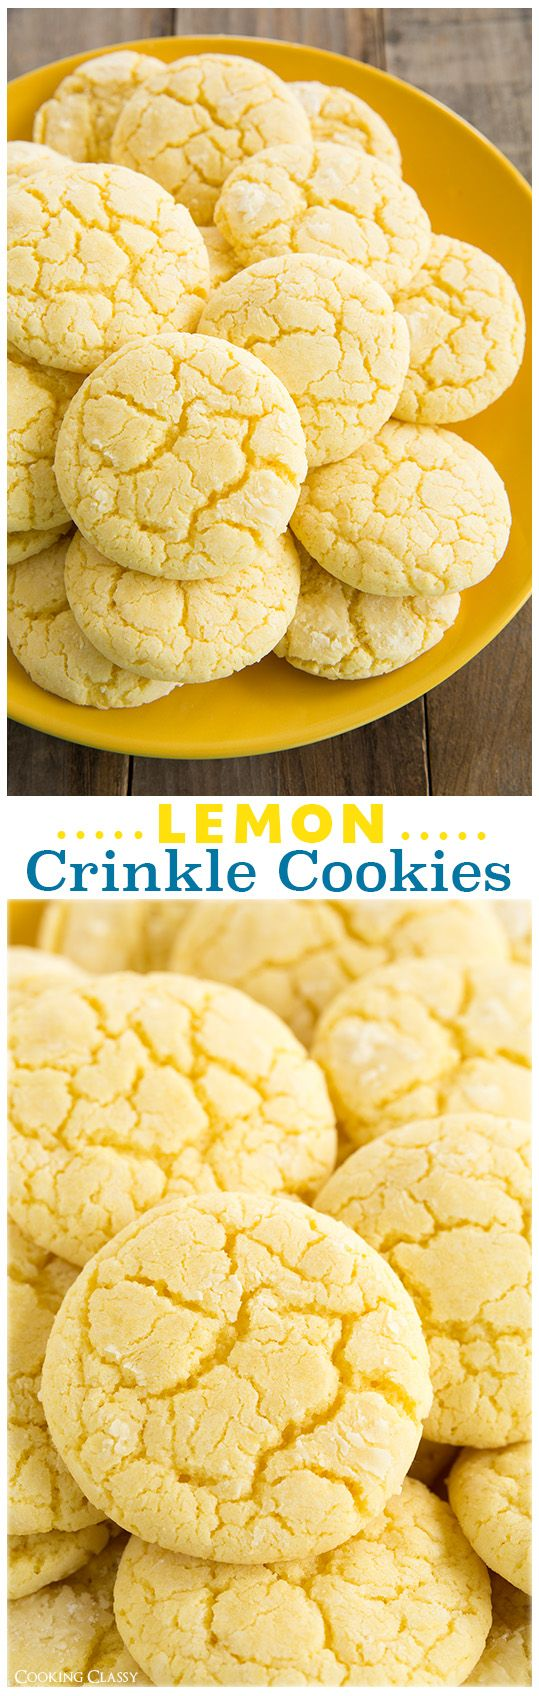 Lemon Crinkle Cookies (from scratch) - These are definitely a new favorite! I…